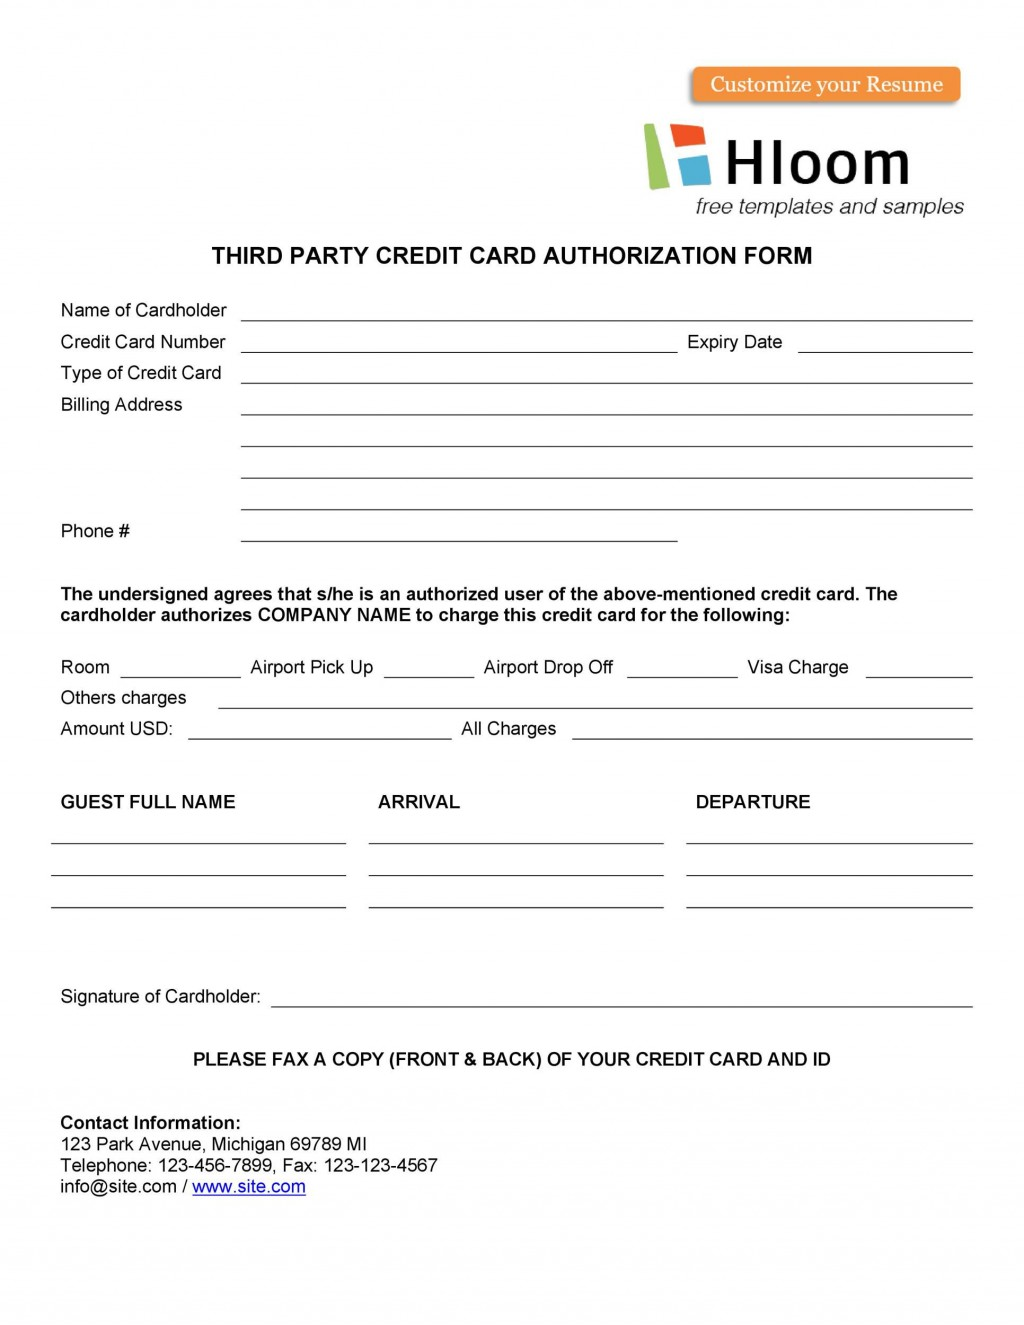 007 Unbelievable Credit Card Usage Request Form Template Sample Large